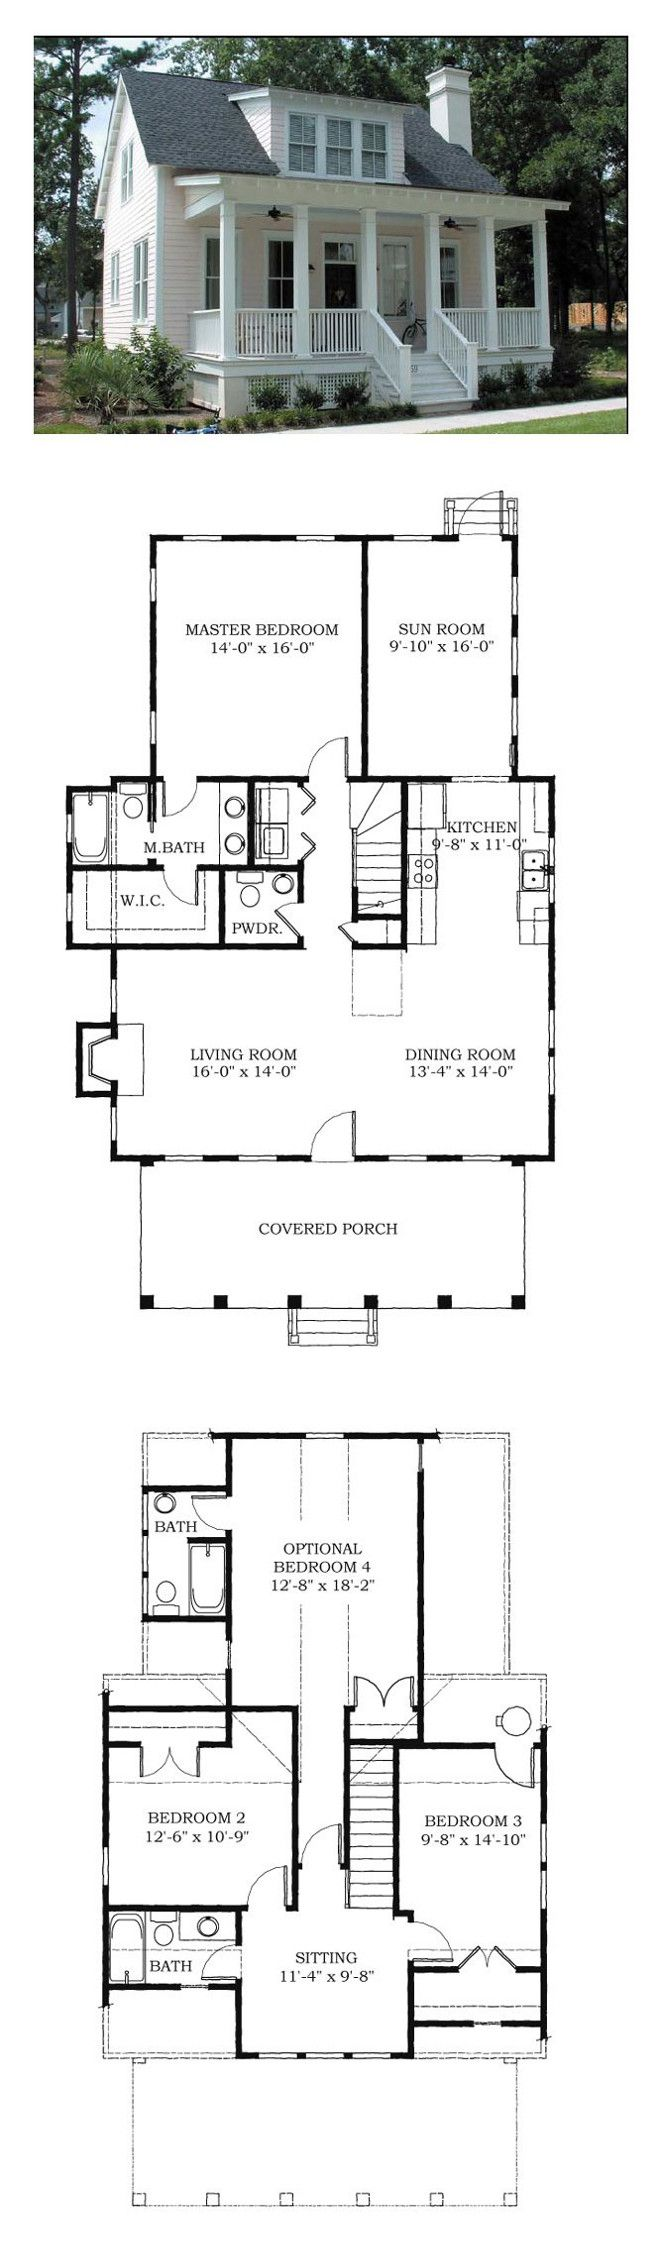 Best 25+ House Blueprints Ideas On Pinterest | House Floor Plans, Small  House Floor Plans And Home Floor Plans